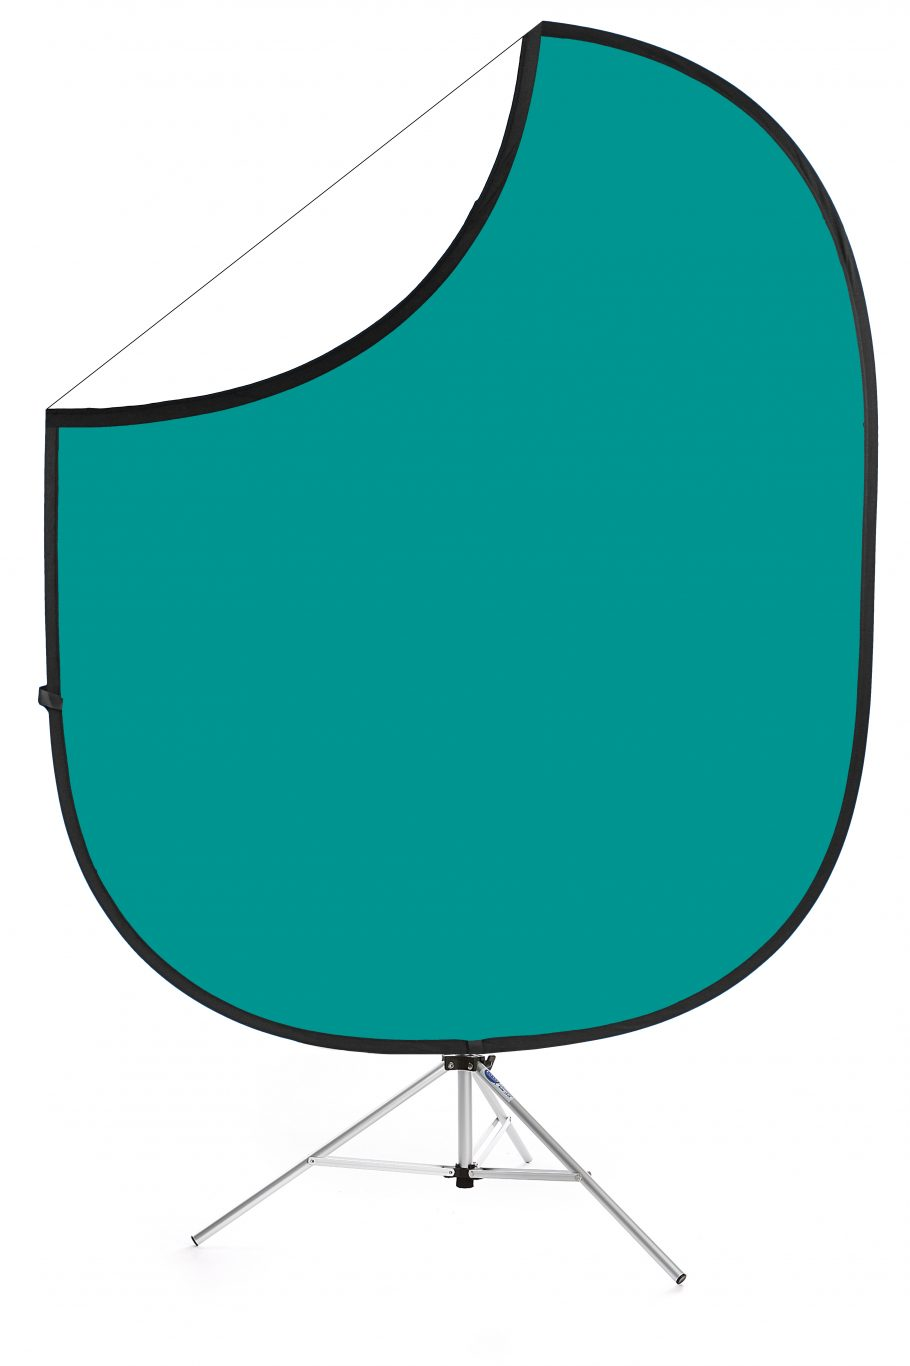 Teal/White Collapsible Backdrop Image 1